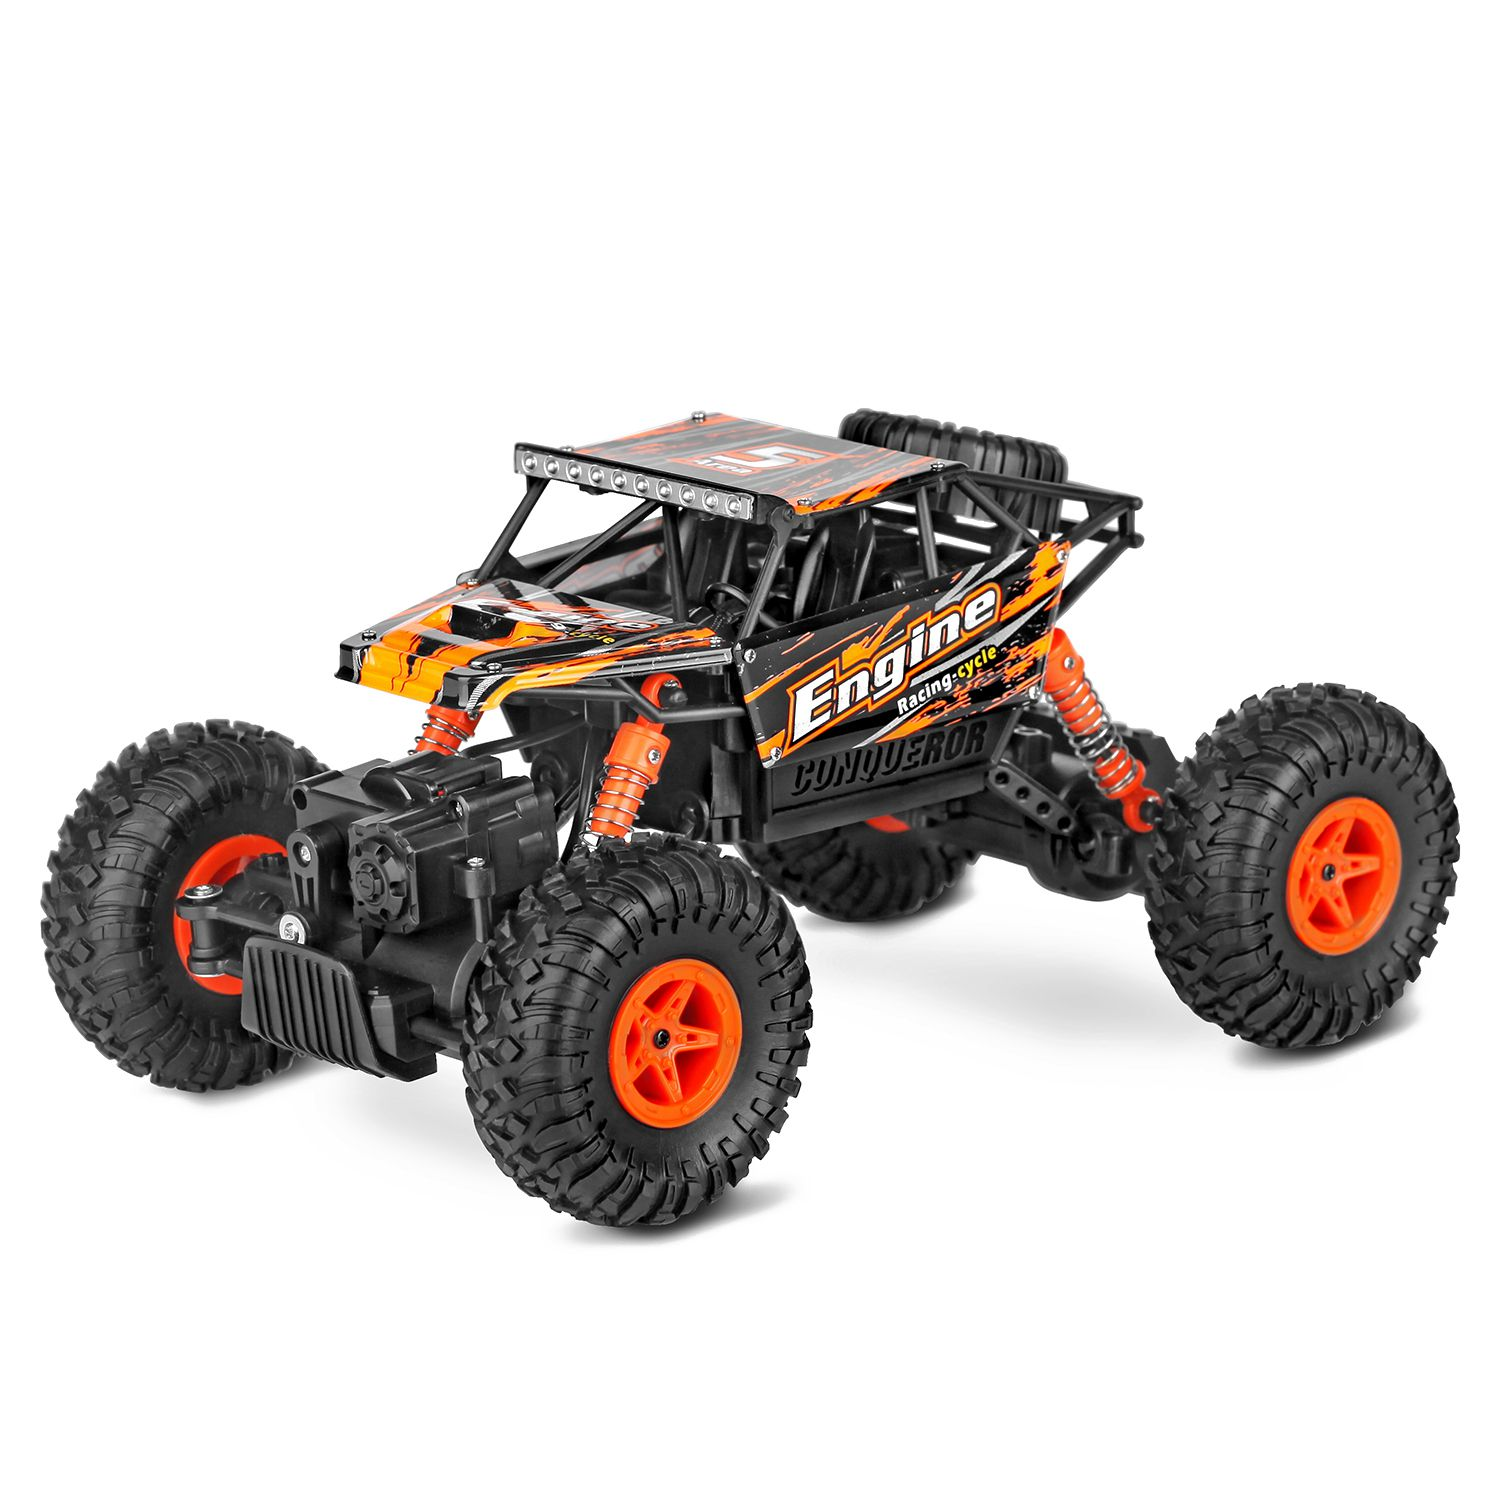 WLtoys 18428 - B RC Cars 1: 18 Scale MODE 2 2.4G 4WD RC Off-road Car Crawler with Four-wheel Independent Suspension System 2pcs 2 2 metal wheel hubs for 1 10 scale rc crawler car nv widen version outer beadlock wheels diameter 64 5mm width 43 5mm